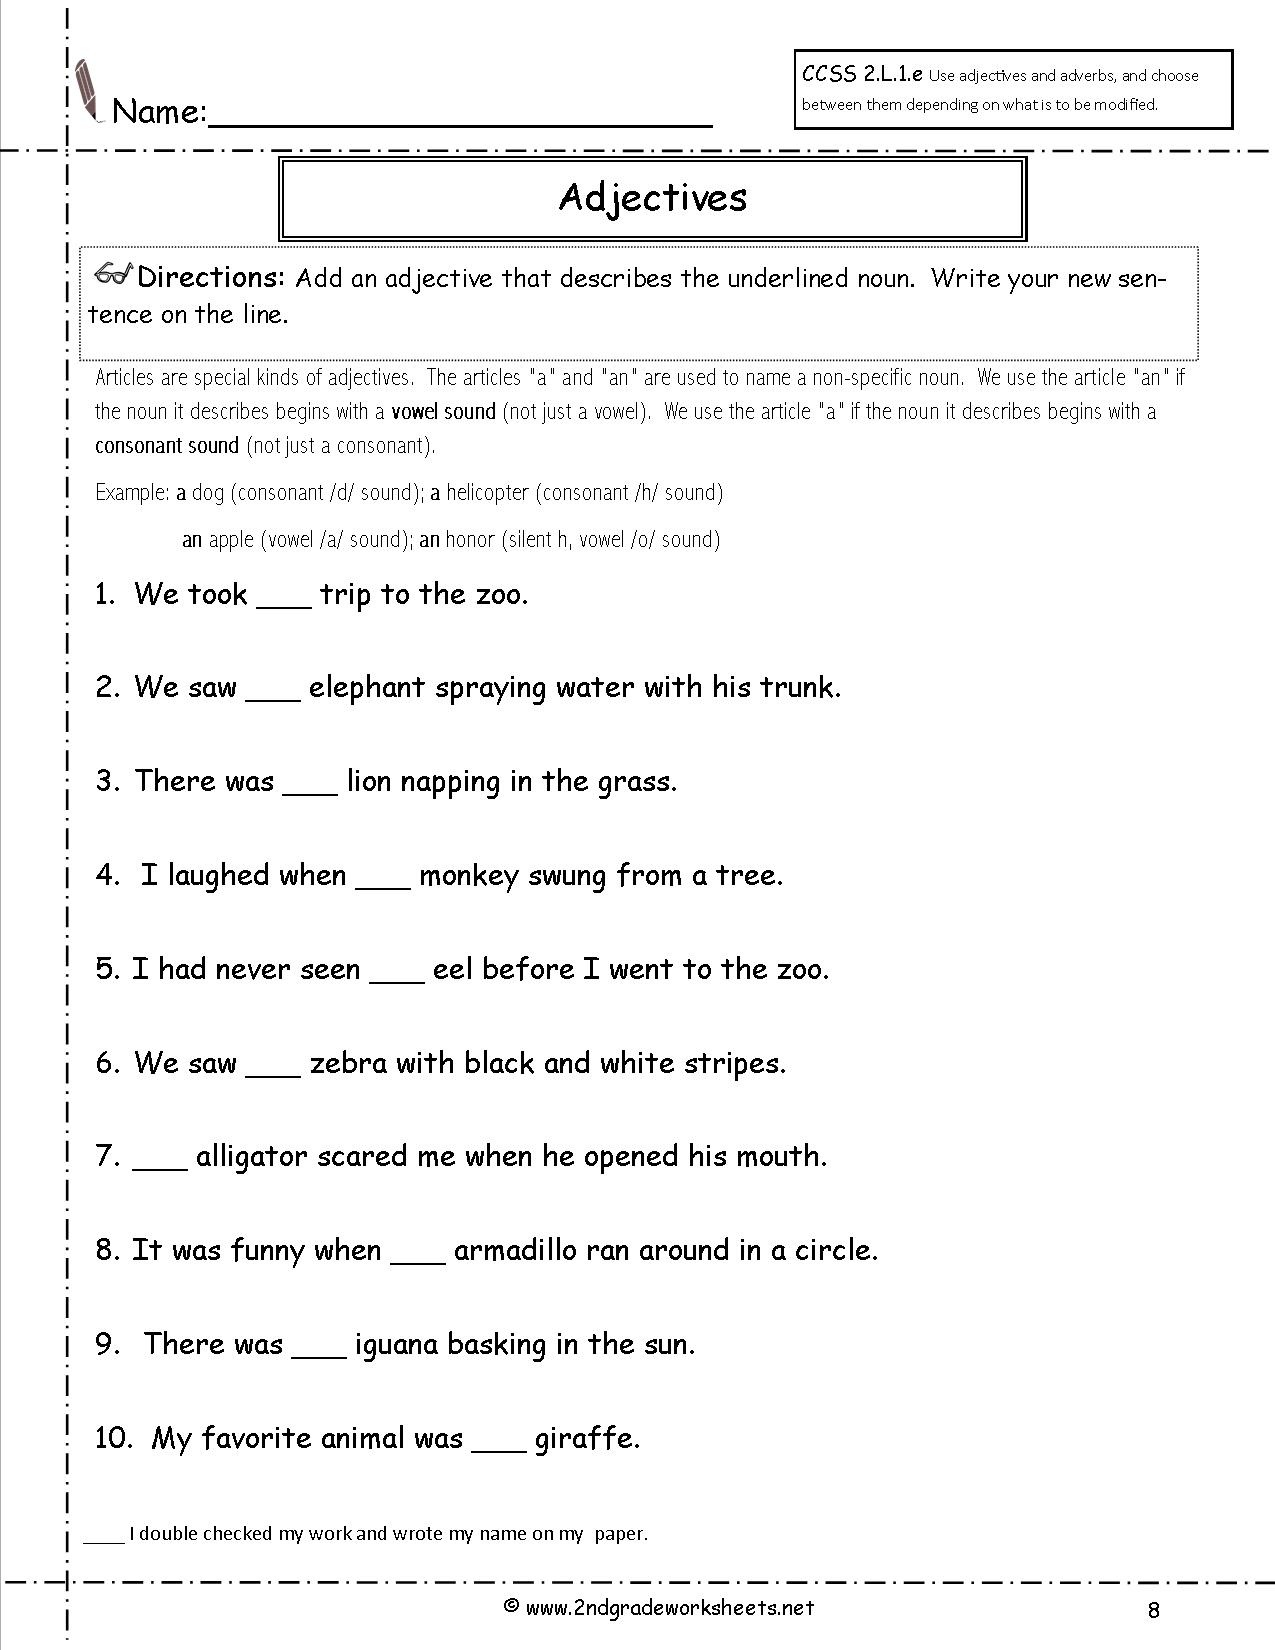 Free Language/grammar Worksheets And Printouts - Free Printable Ela Worksheets